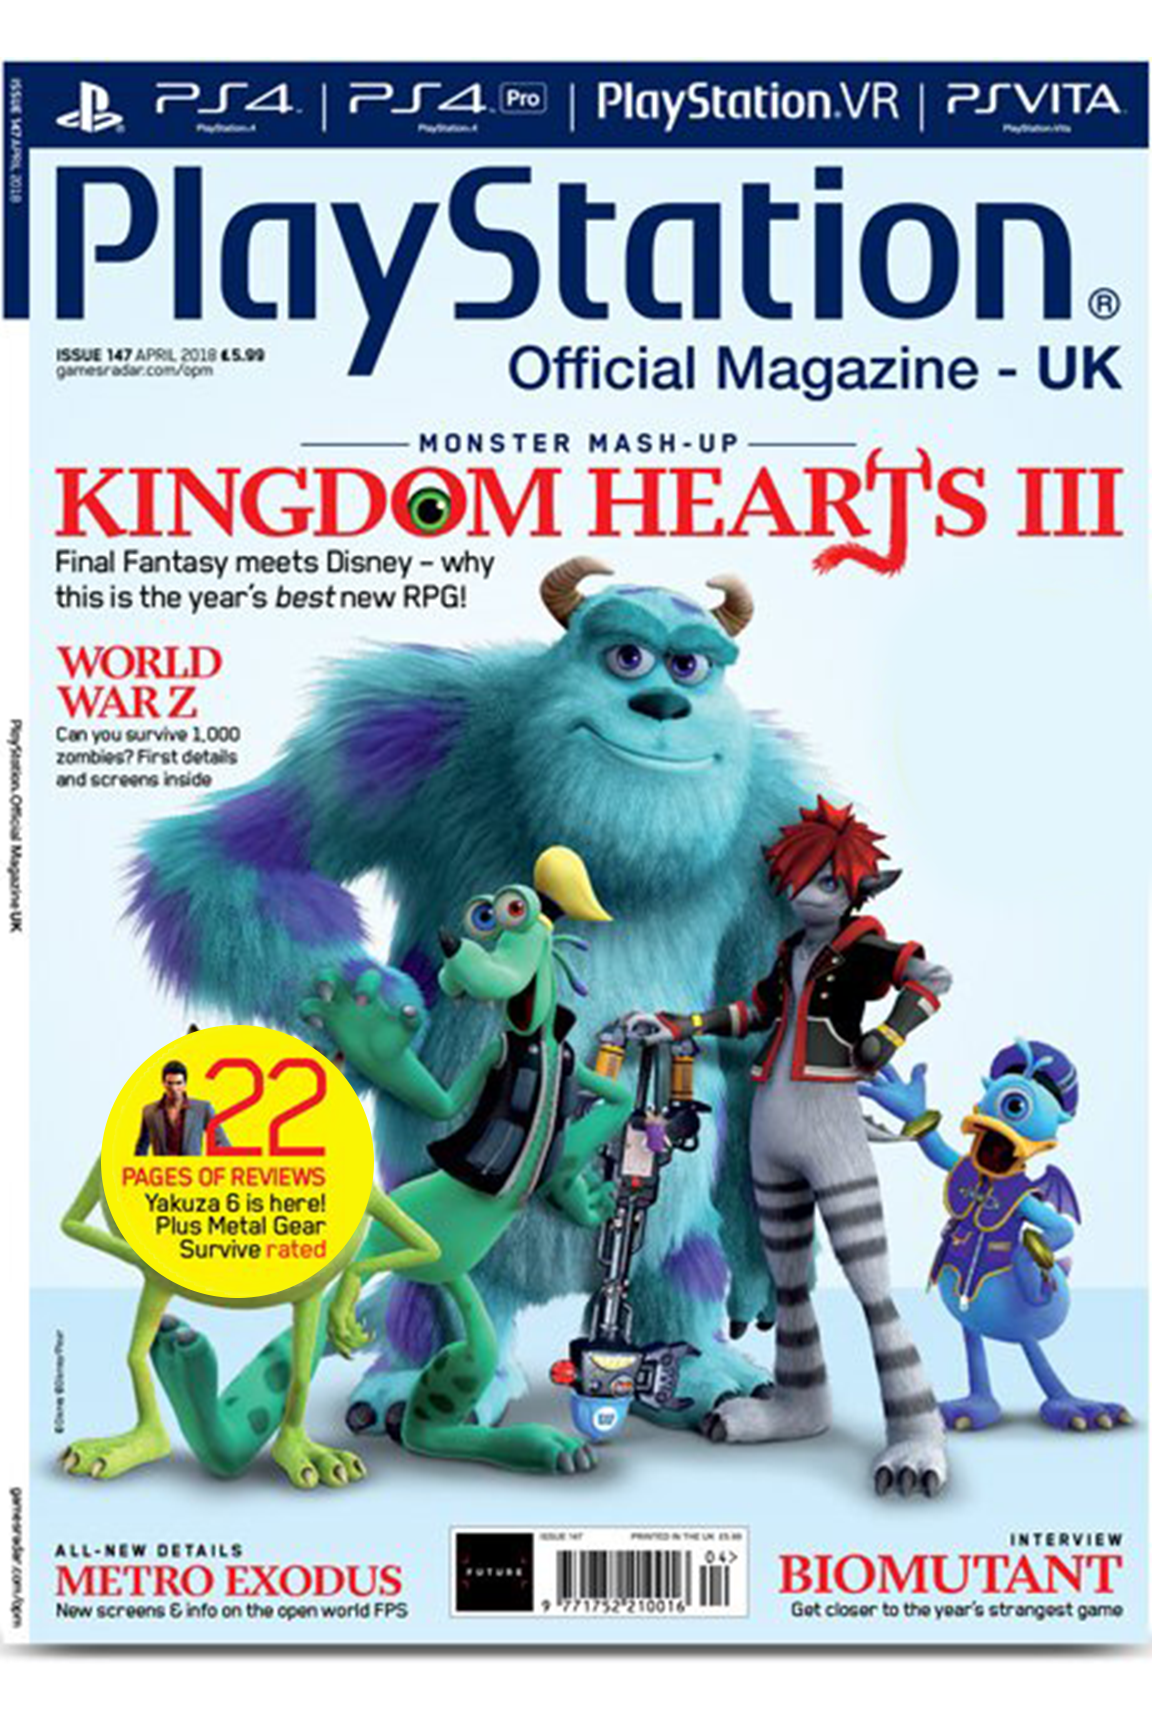 Uk Playstation Magazine Cover Of Kingdom Hearts 3 Looks Great Kingdom Hearts Iii Know Your Meme